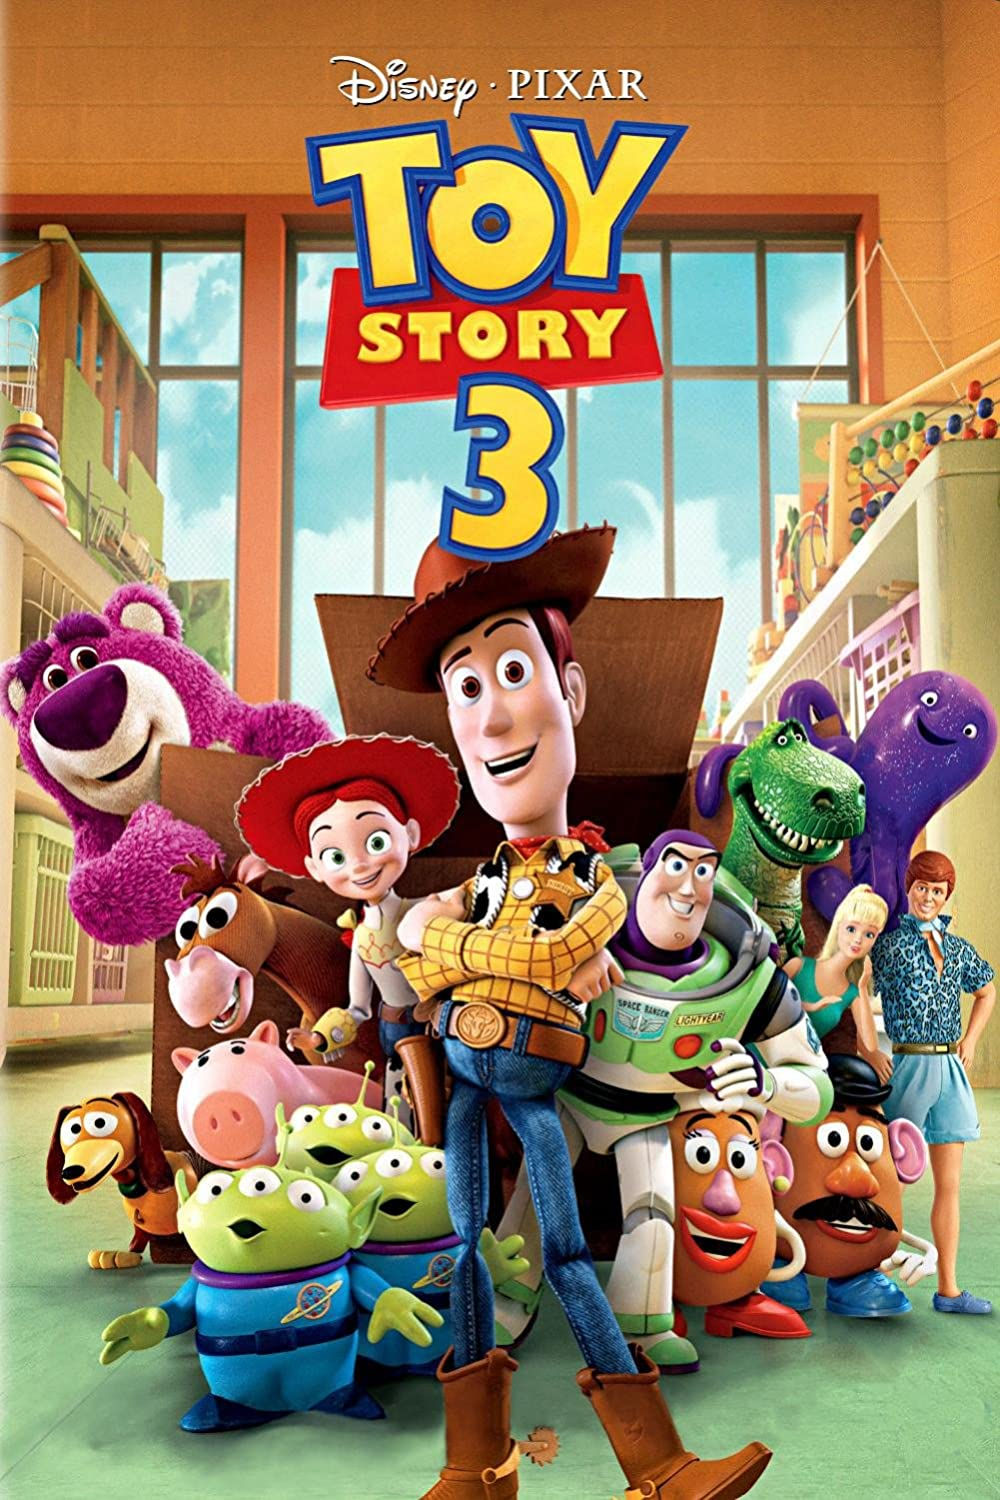 Image result for toy story 3 movie poster""